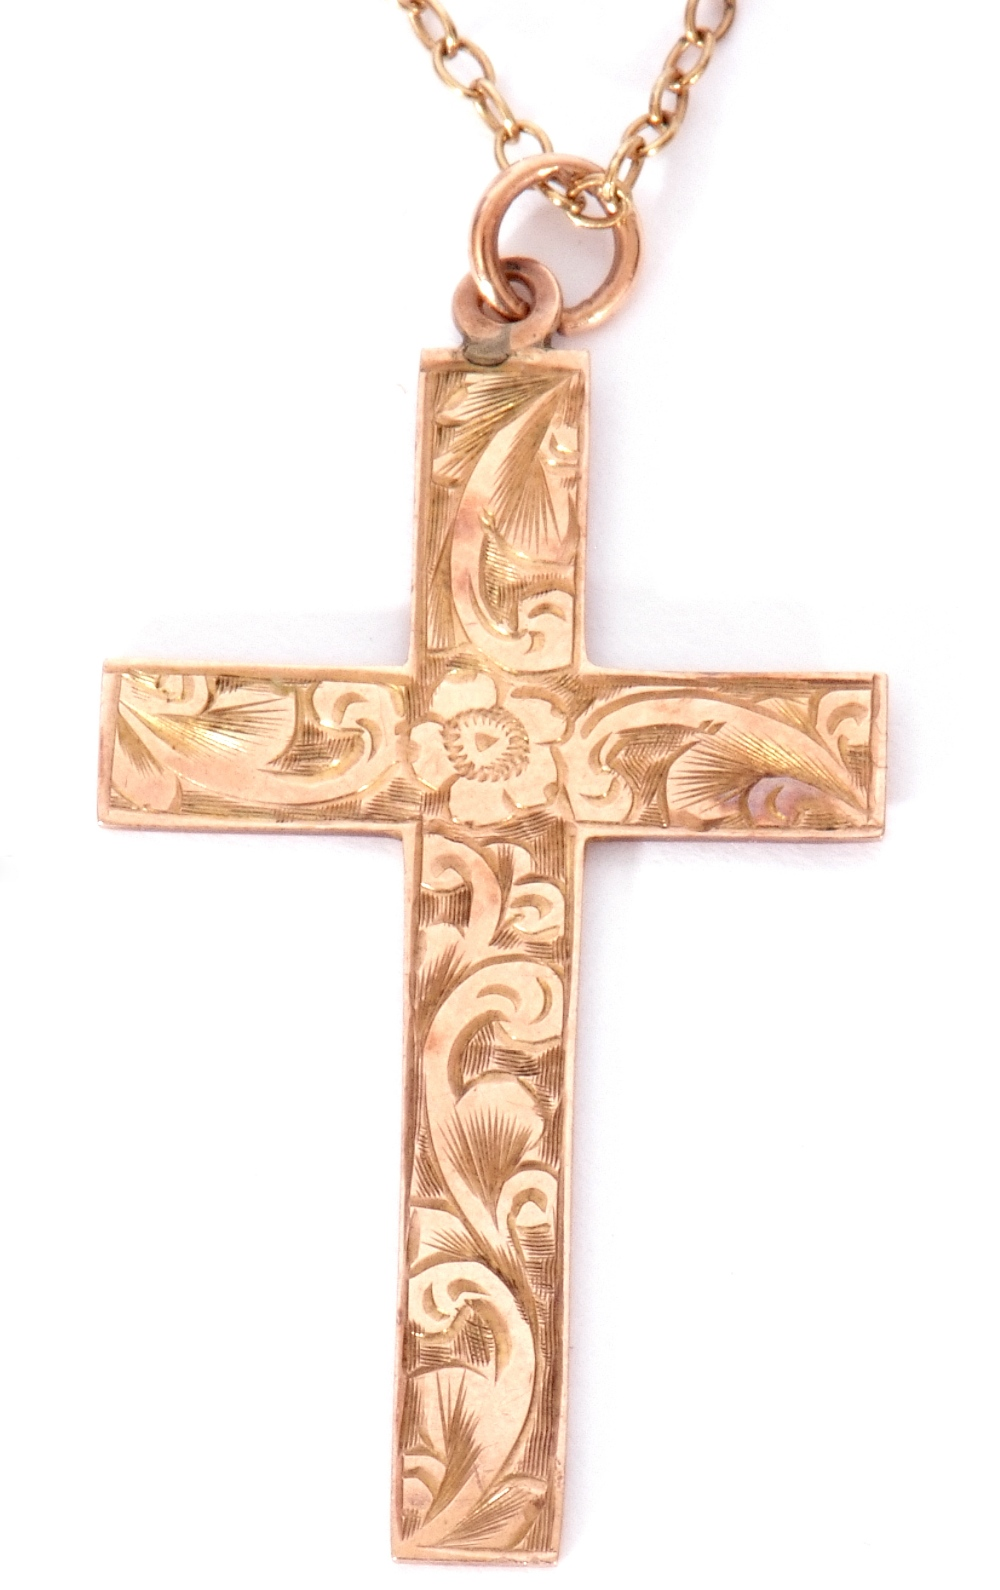 9ct stamped cross pendant, chased and engraved scroll decorated front, 35 x 22mm